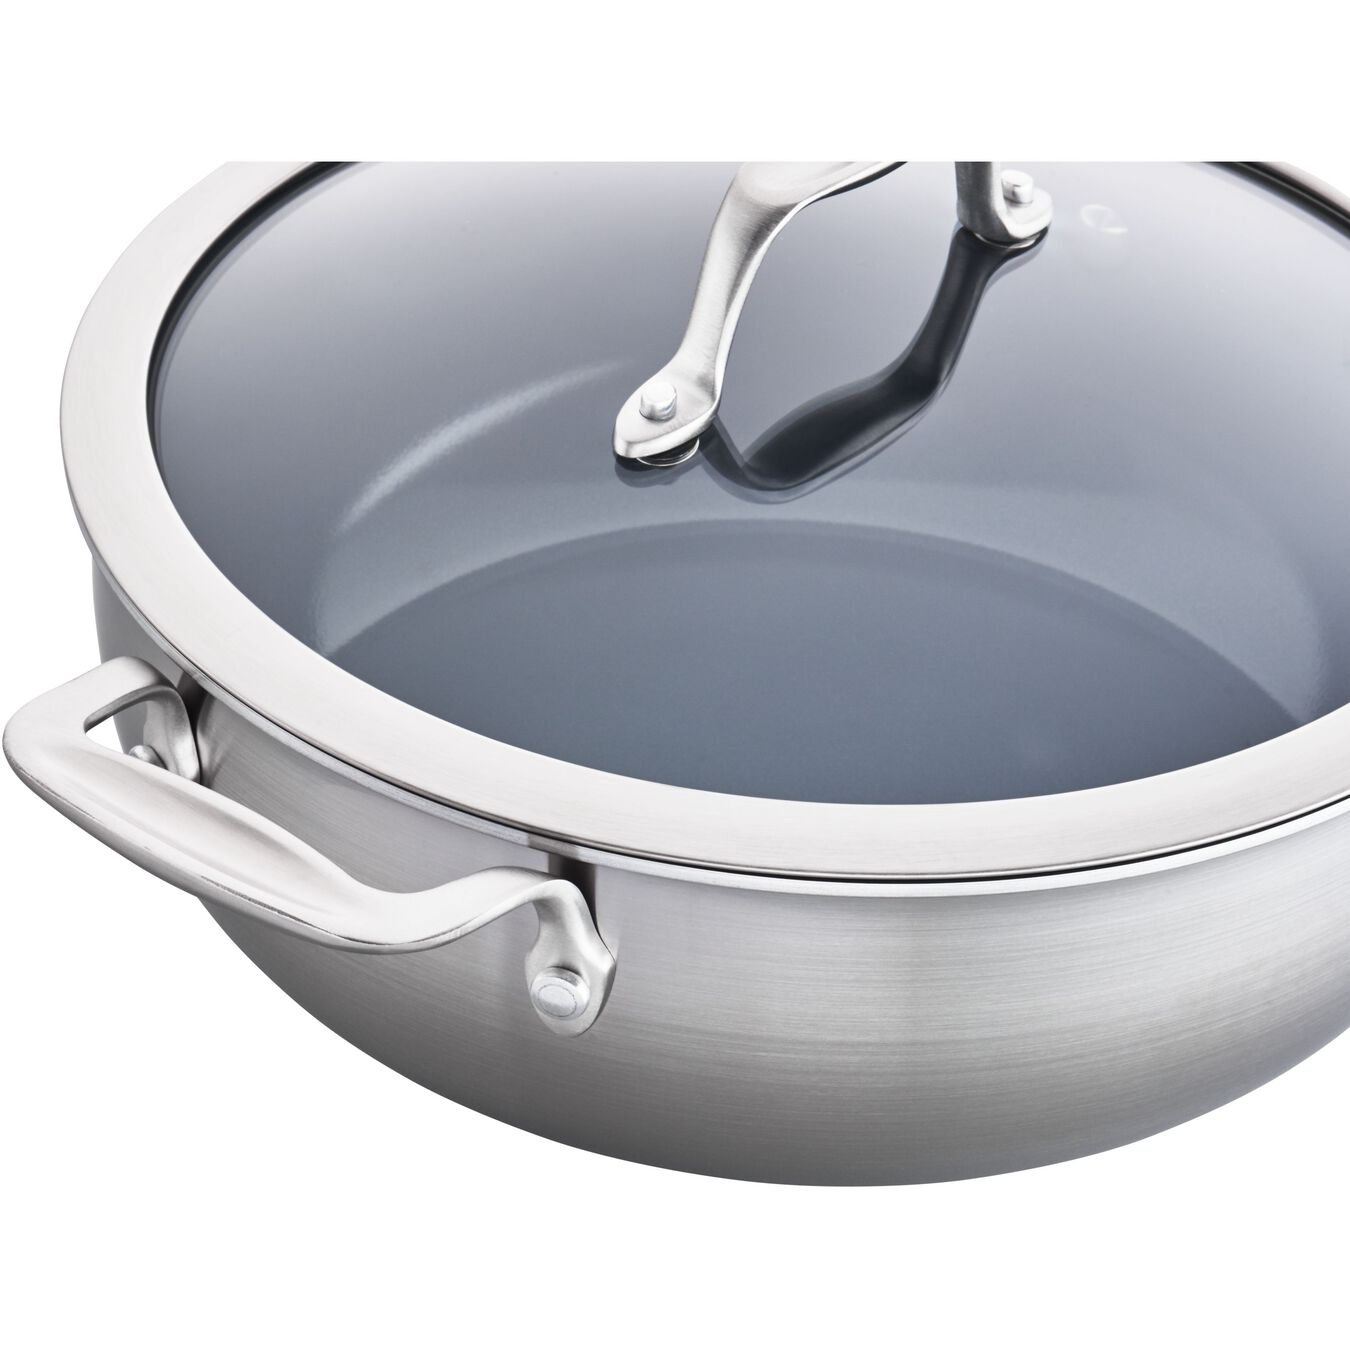 3-ply 4.6-qt Stainless Steel Ceramic Nonstick Perfect Pan,,large 3